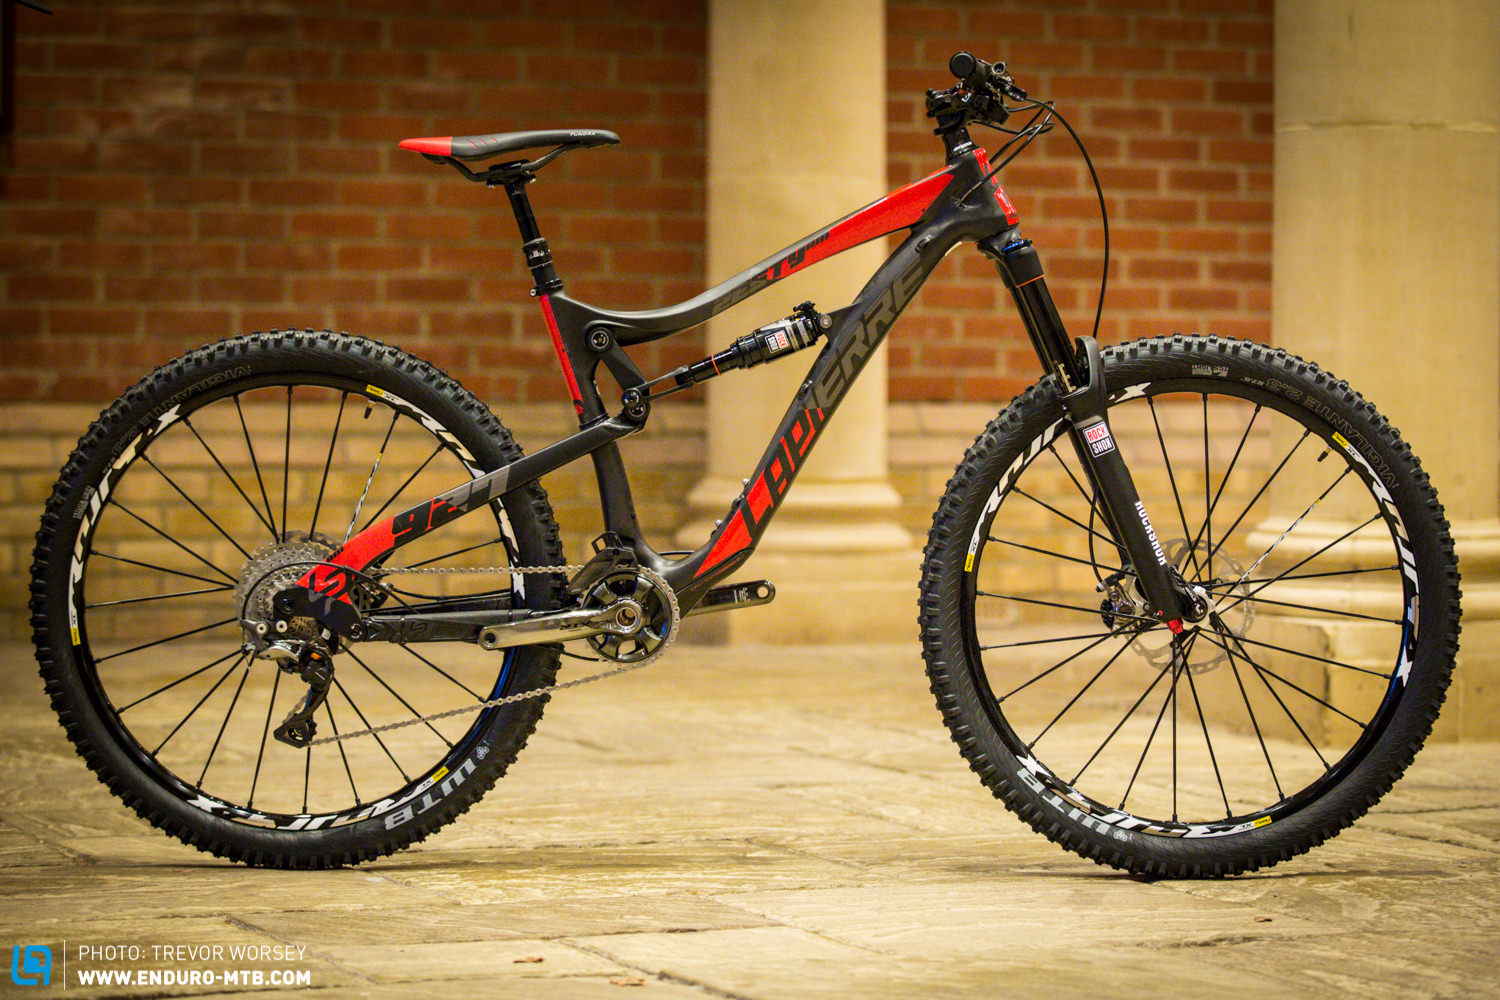 First Look | Lapierre Zesty AM 927 Ultimate UK Bike | ENDURO Mountainbike  Magazine